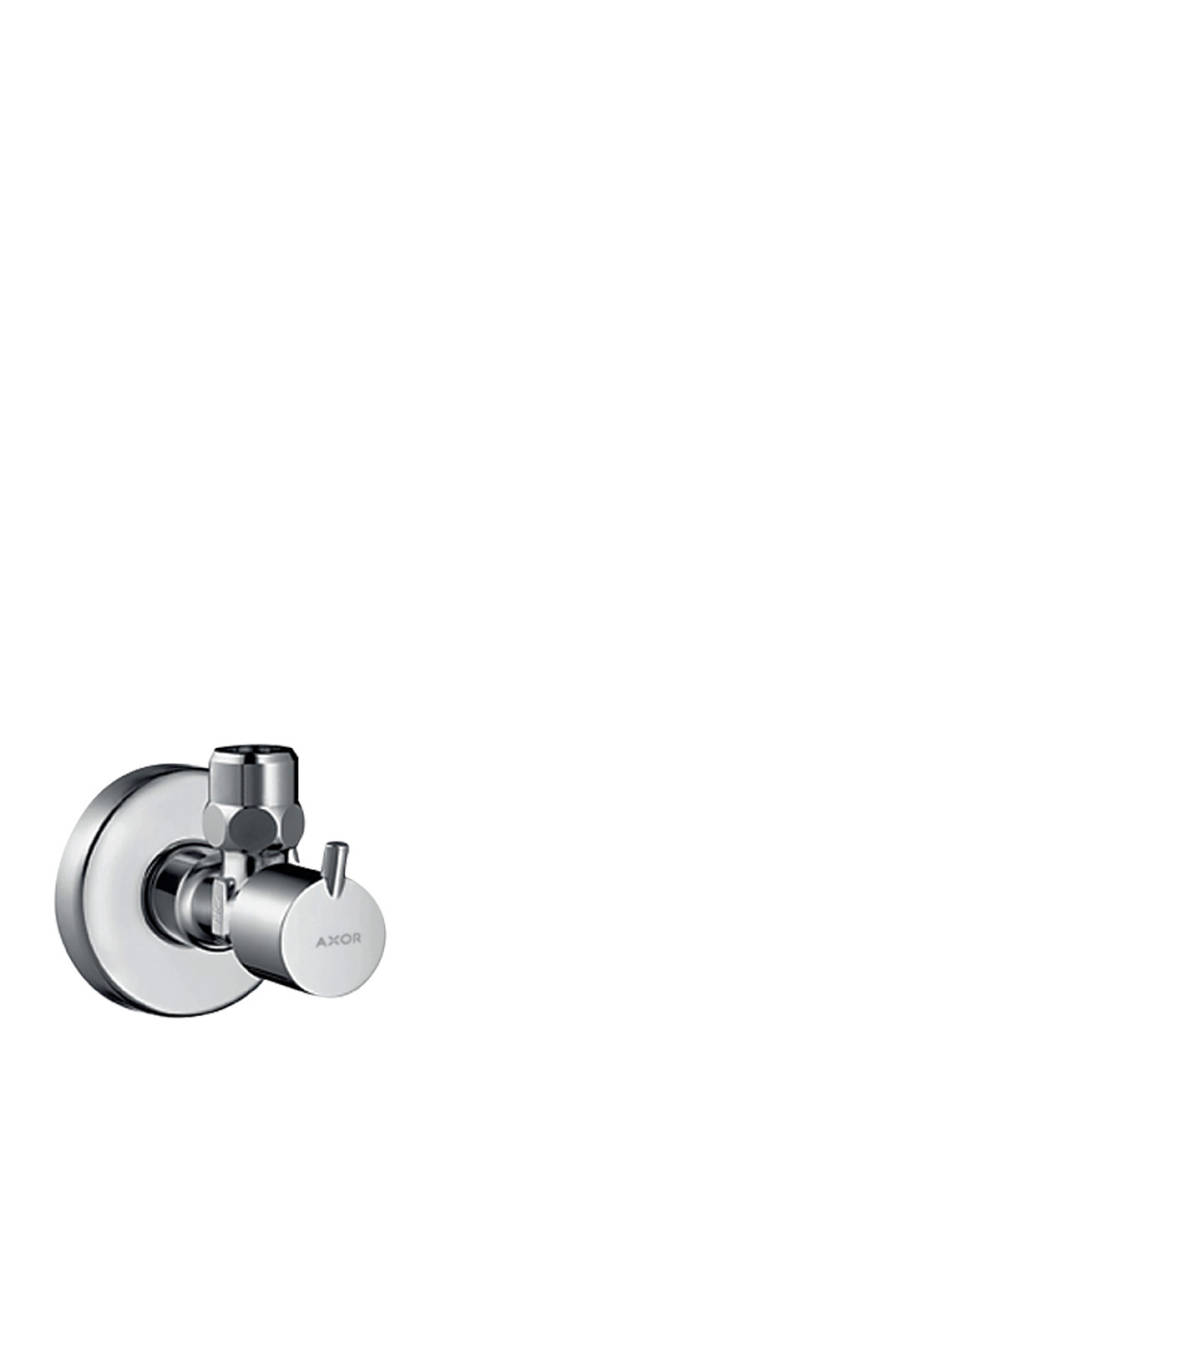 Contemporary Hansgrohe Angle Valve Image Collection - Bathroom and ...